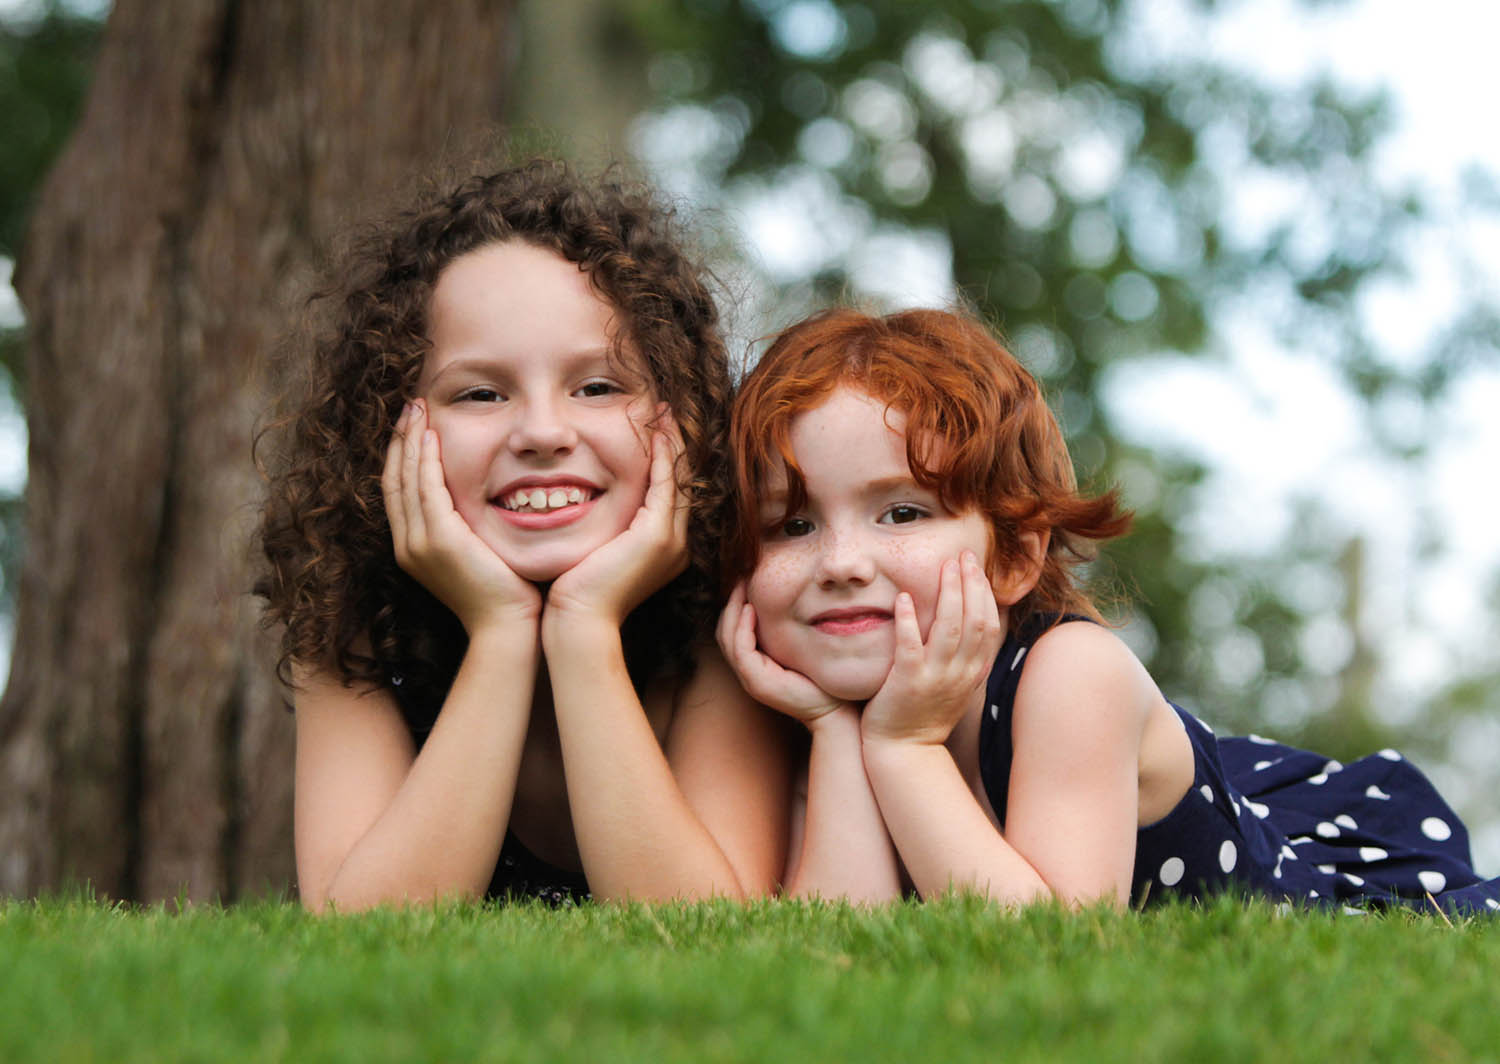 Photo of two little girls